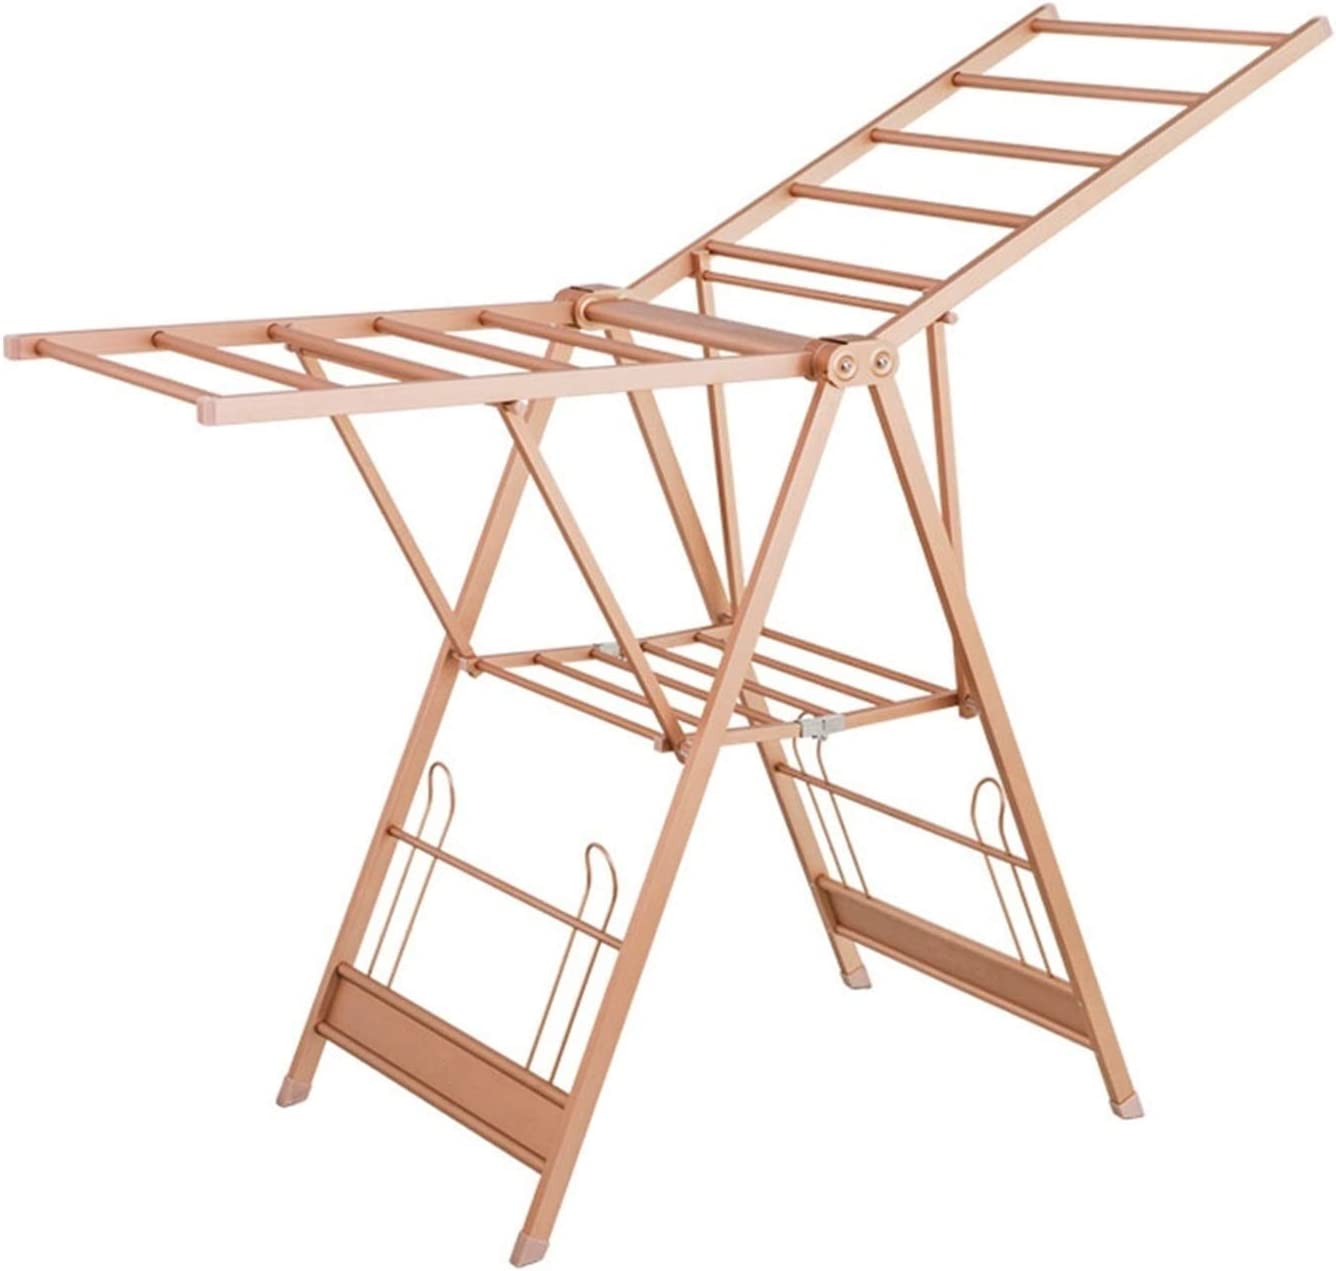 XIAOQIU Clothes Drying Rack for Airer New Shipping Free 2 Tier Laundry Max 74% OFF Alu